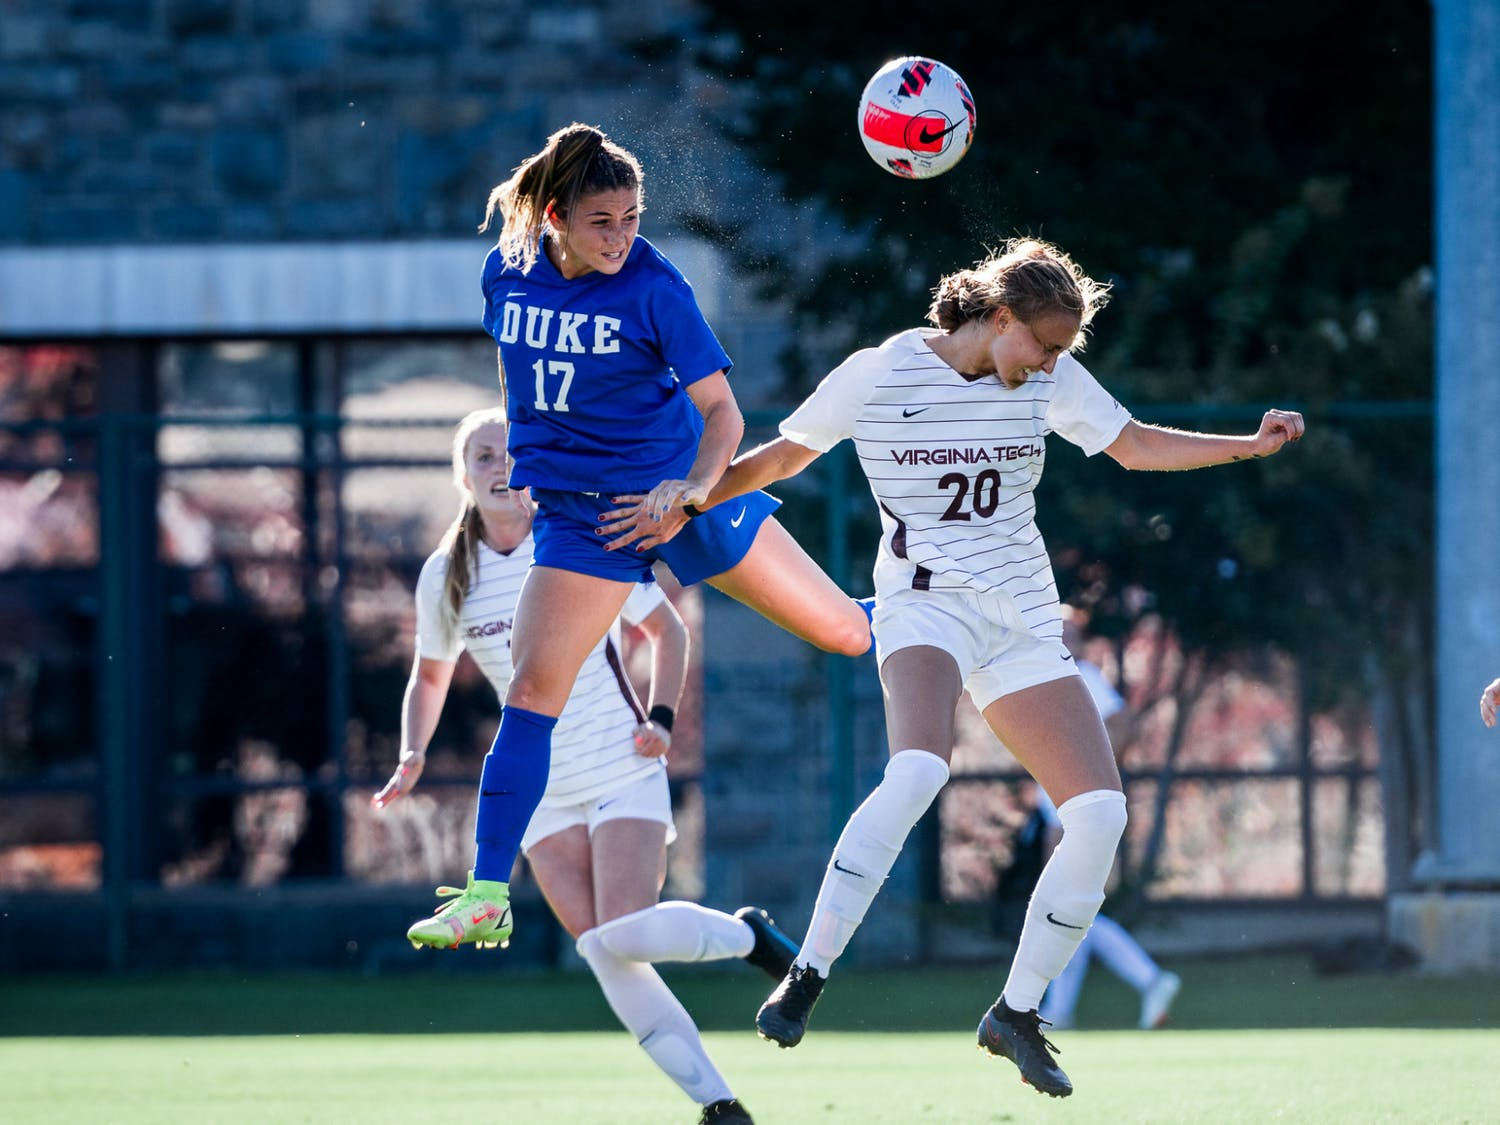 Sophomore Nicky Chico scored her first goal of her career against Virginia Tech.